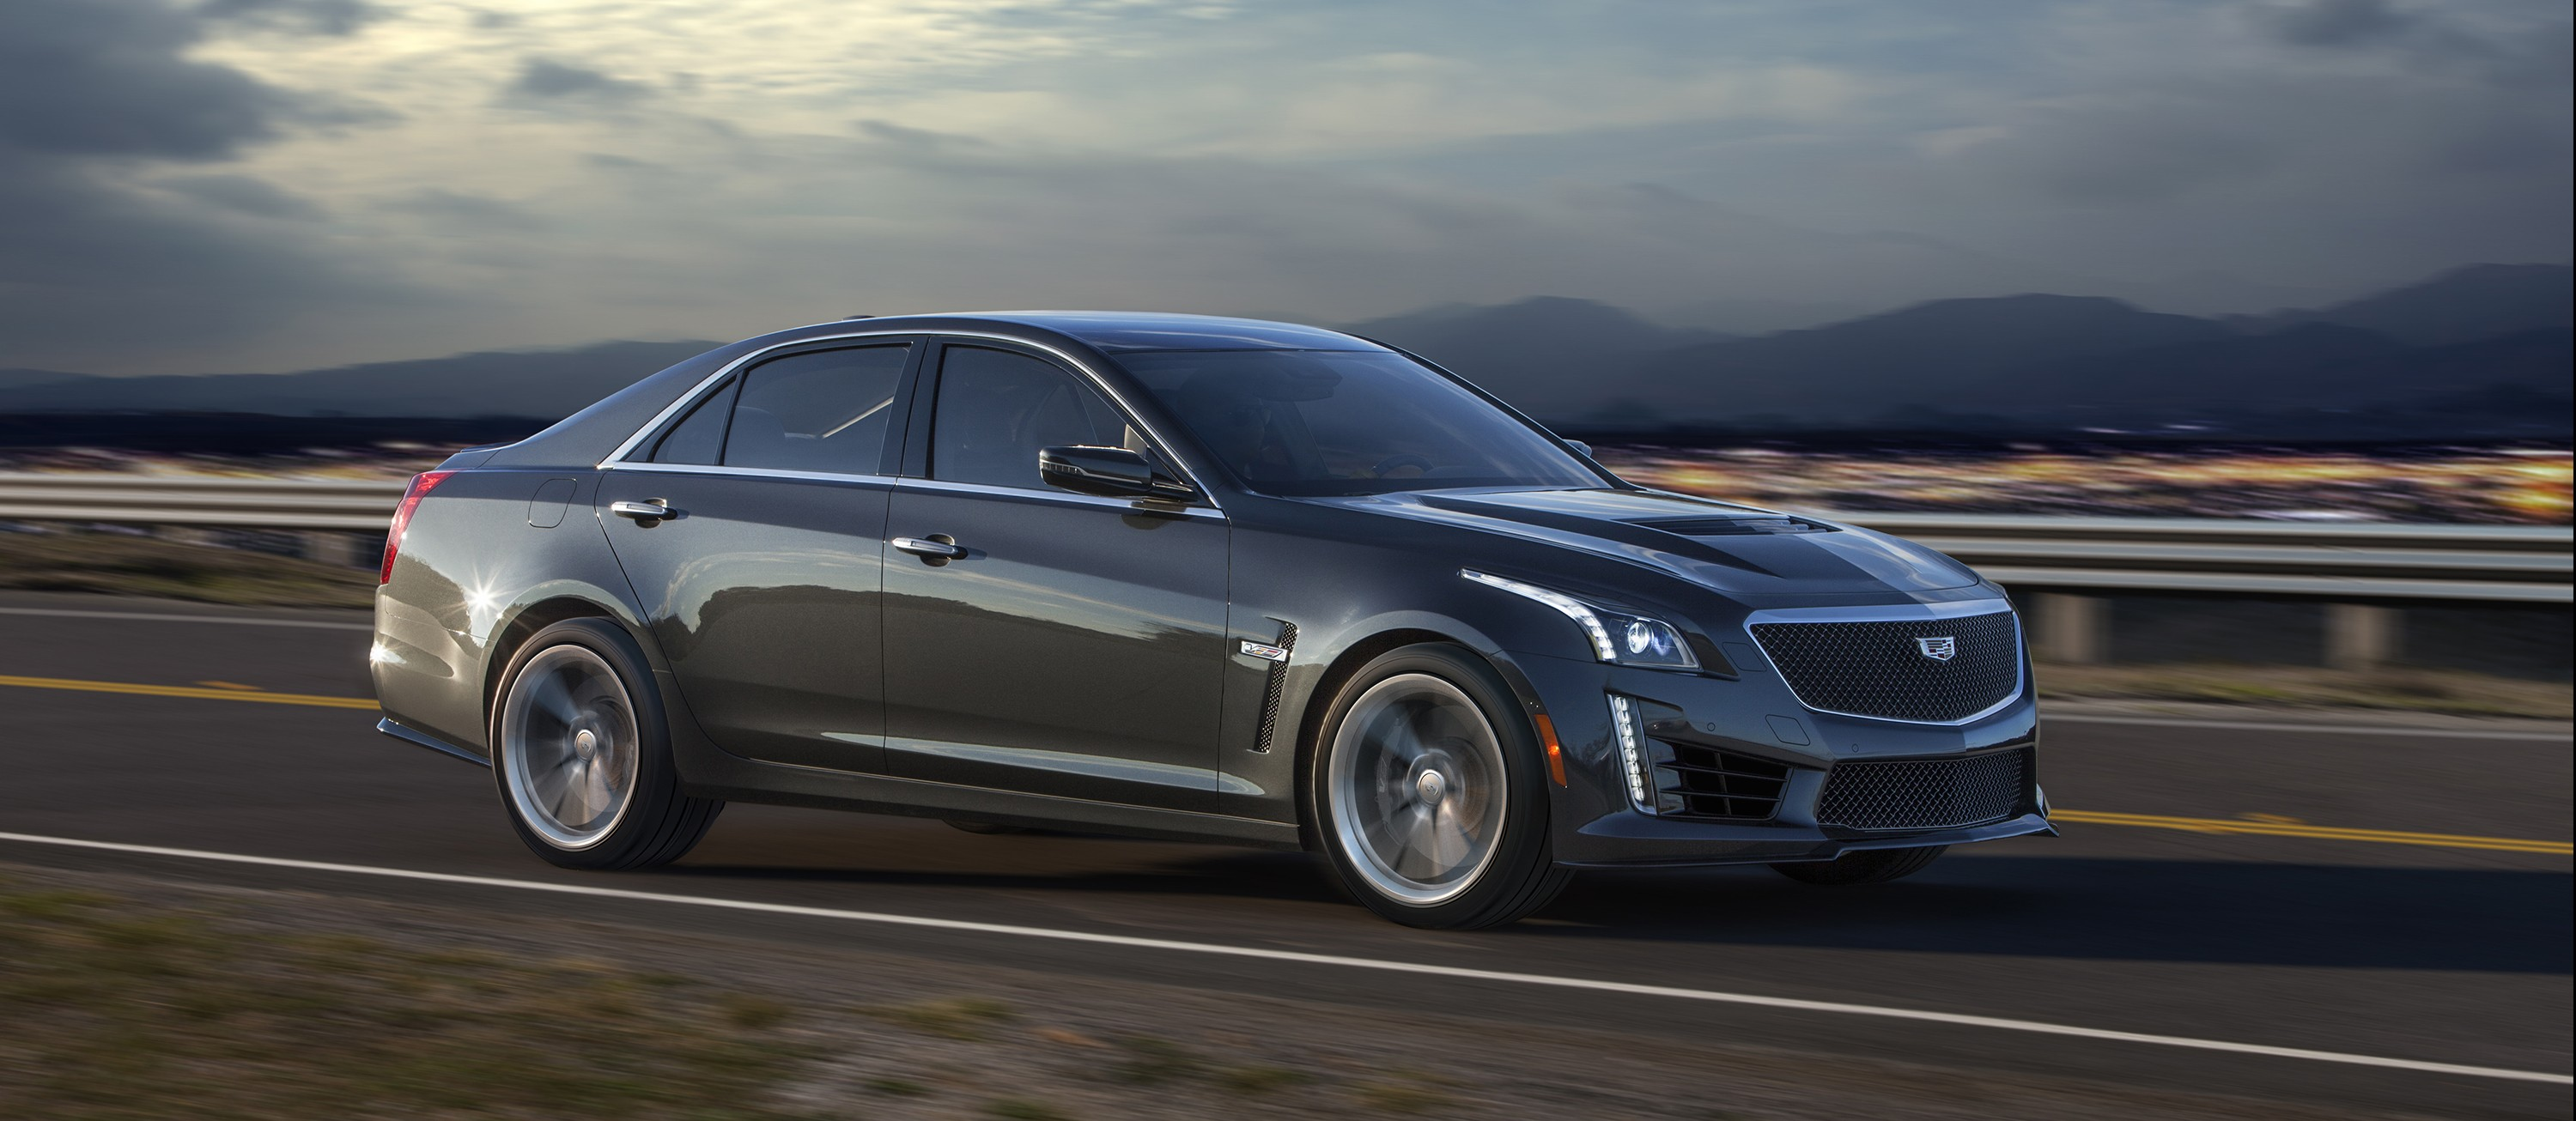 Electric All Wheel Drive System Confirmed For Next Gen Cadillac V